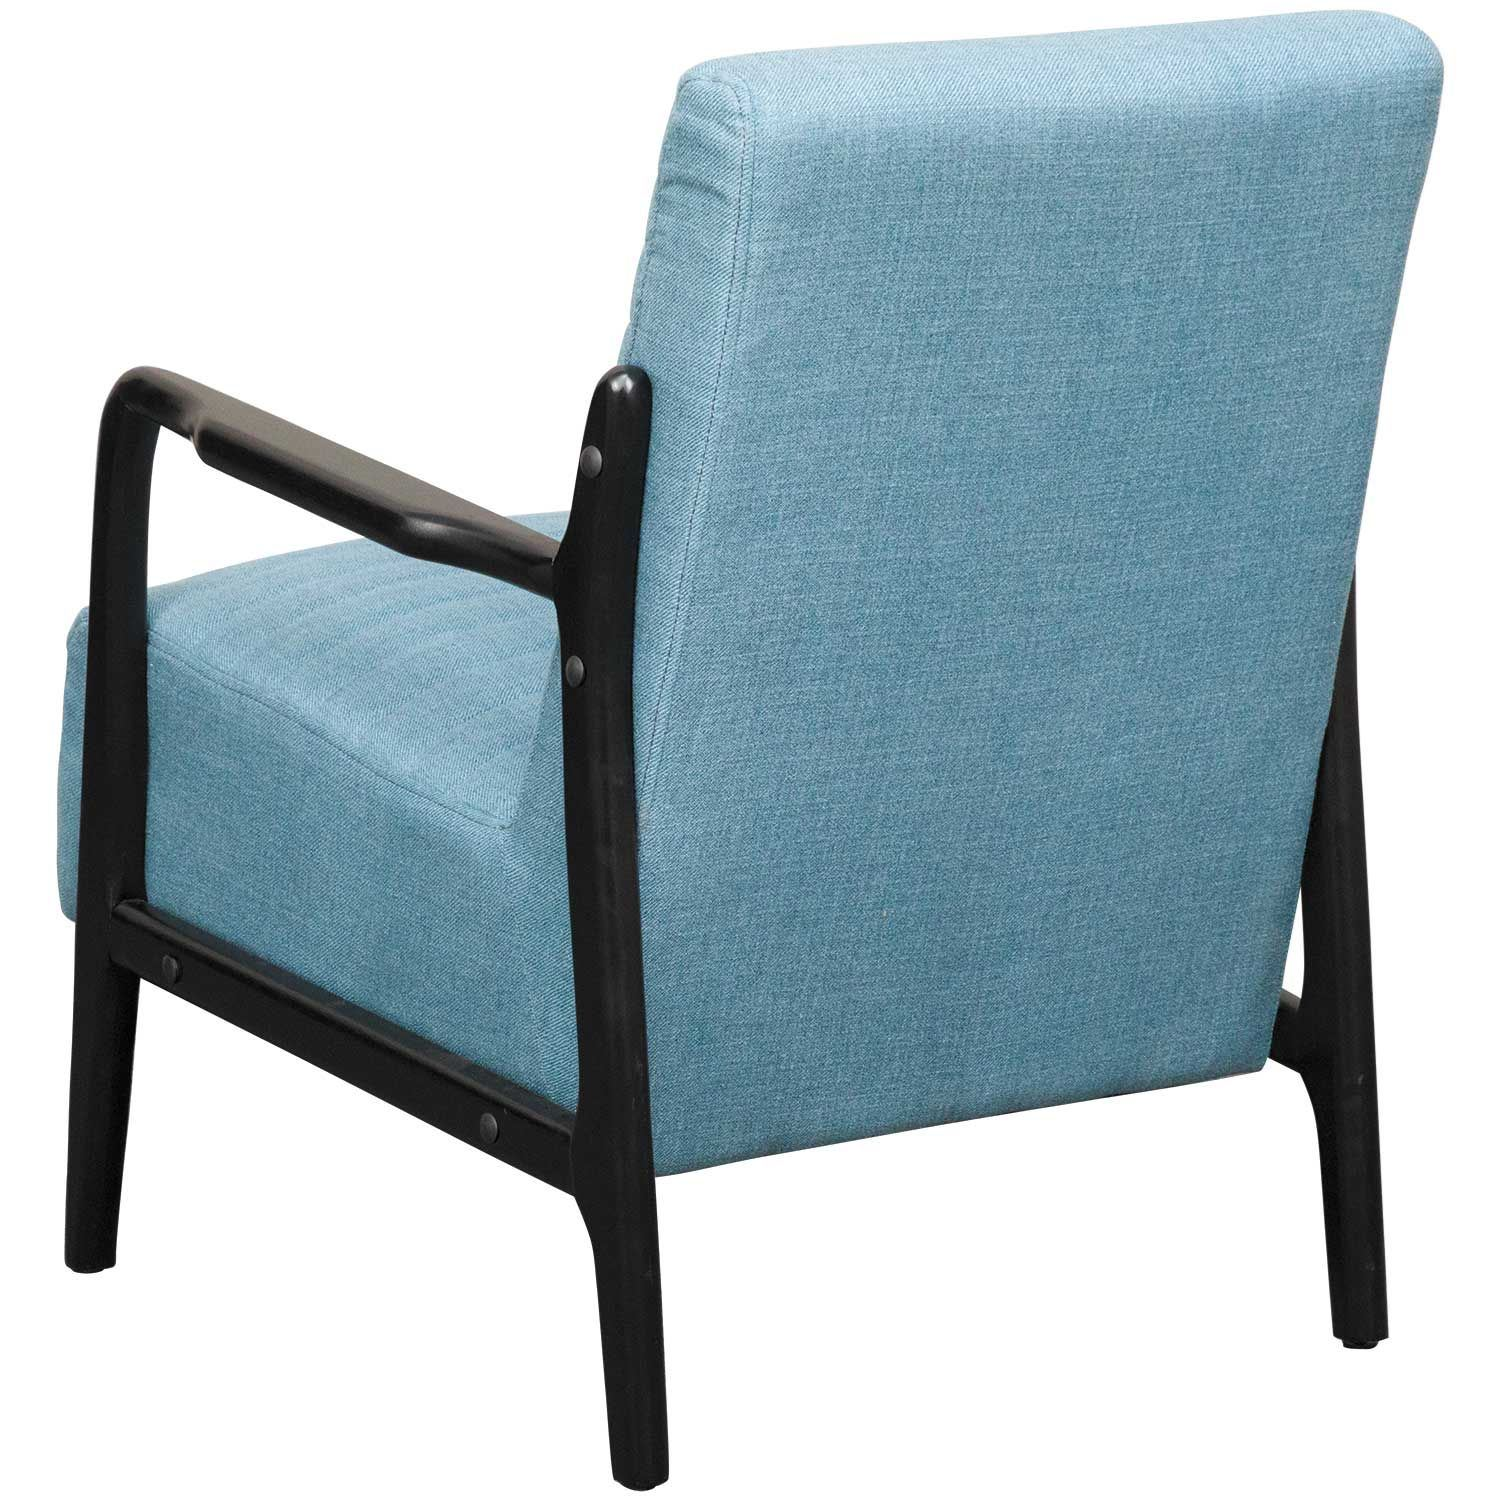 Emerald Green Accent Chair Zola Teal Accent Chair U3489 05 04 Emerald Home Furnishings